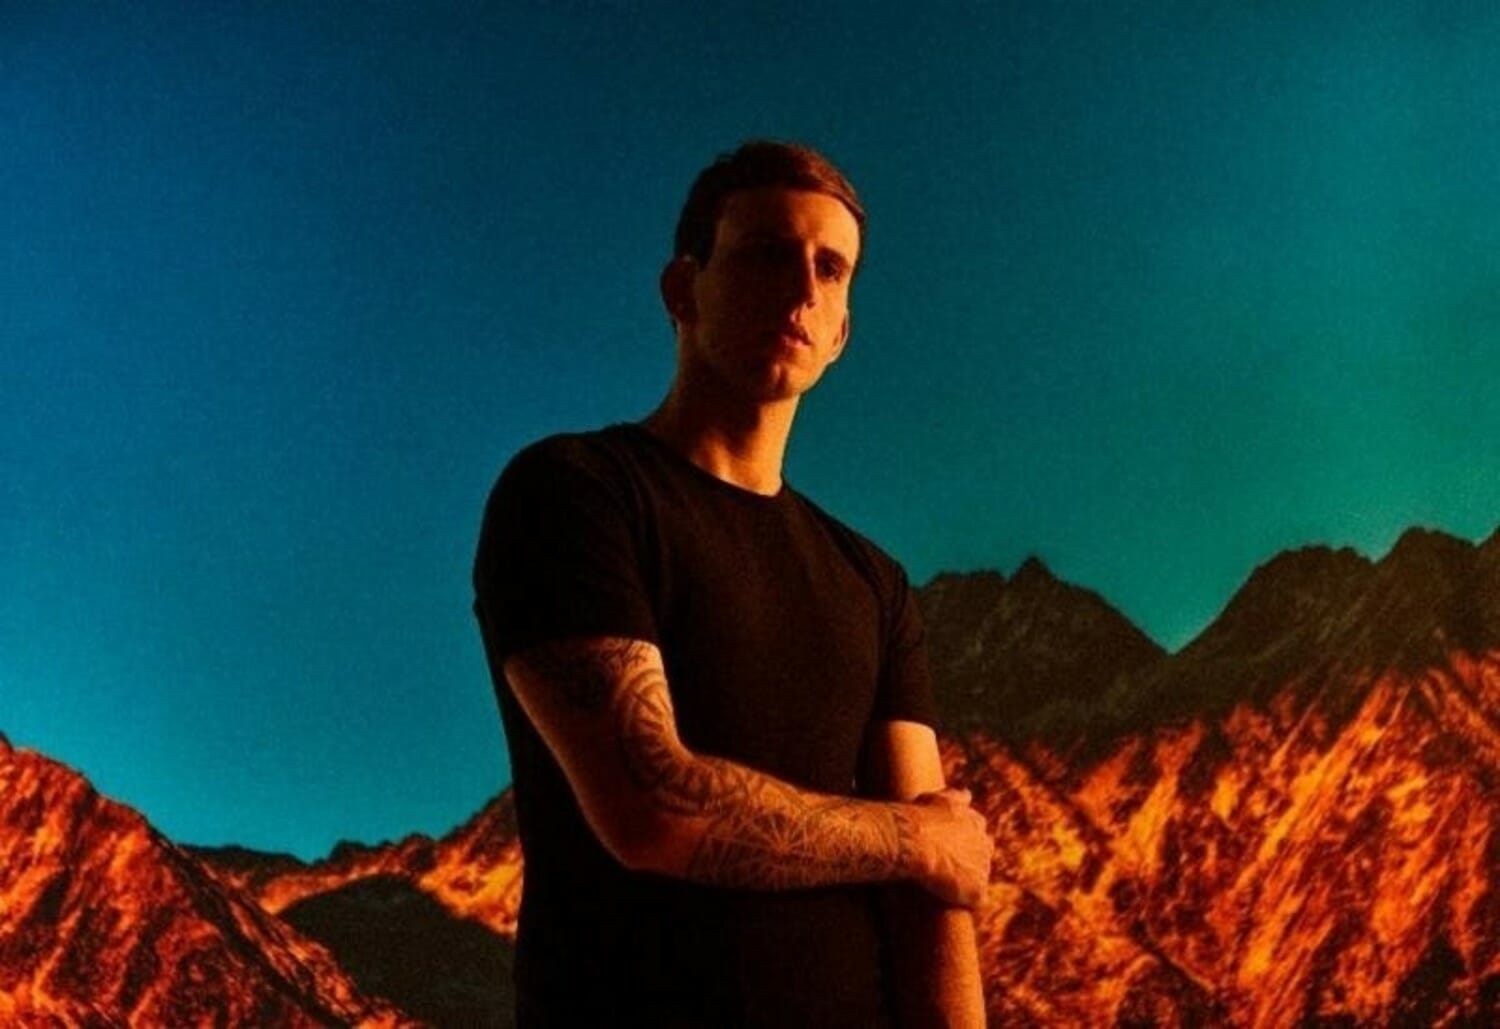 NMF Roundup: Illenium delivers 'Blood,' Dillon Francis and Eptic link for 'Let It Go' on Monstercat + moreIllenium Press Shot 2